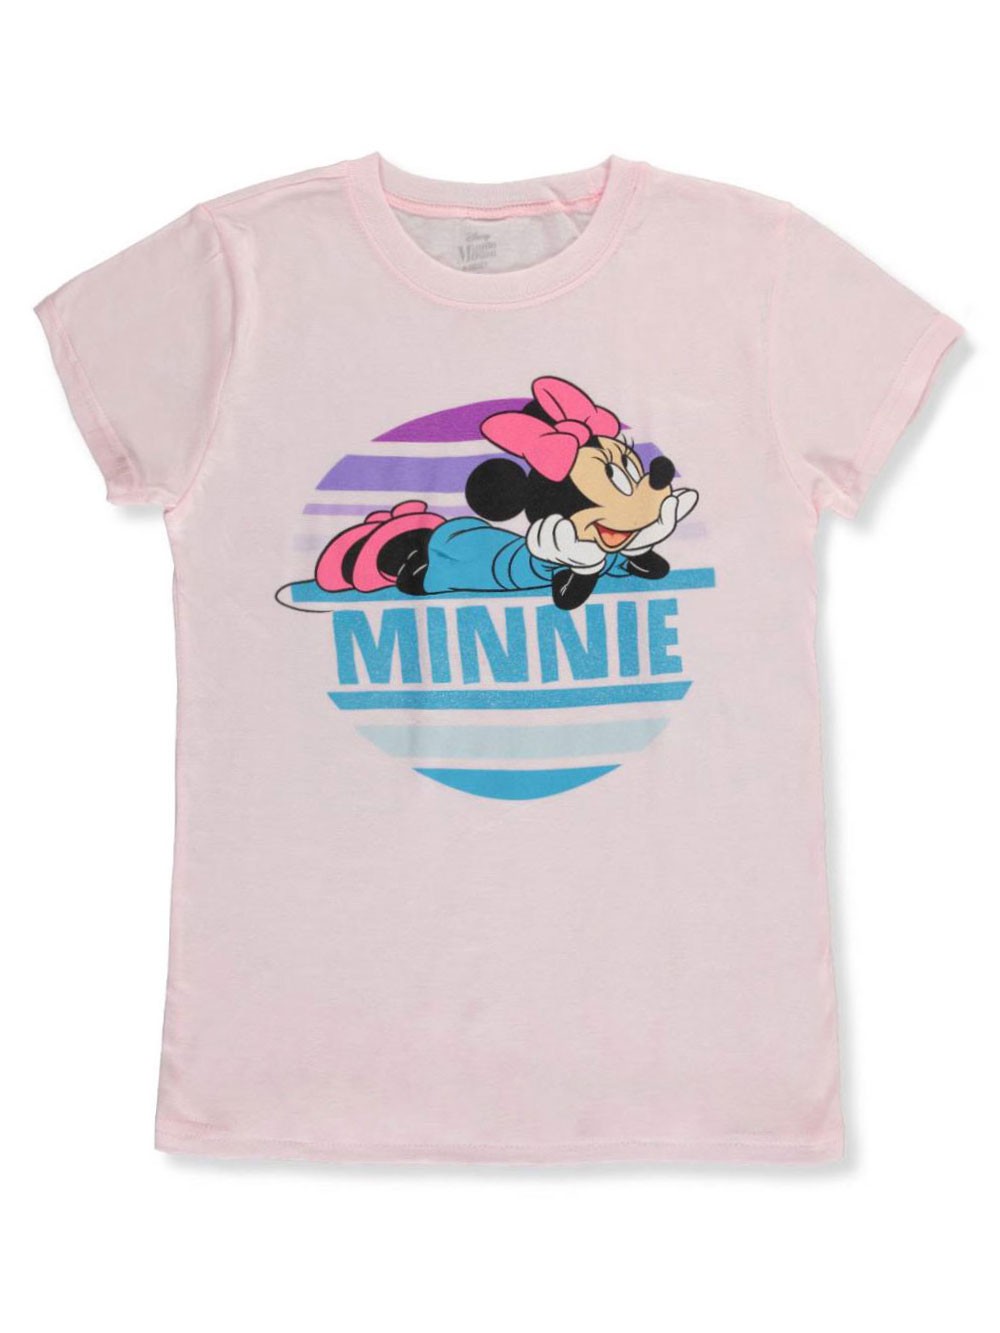 Minnie Mouse Girls 7-16 Youth T-Shirt Pink